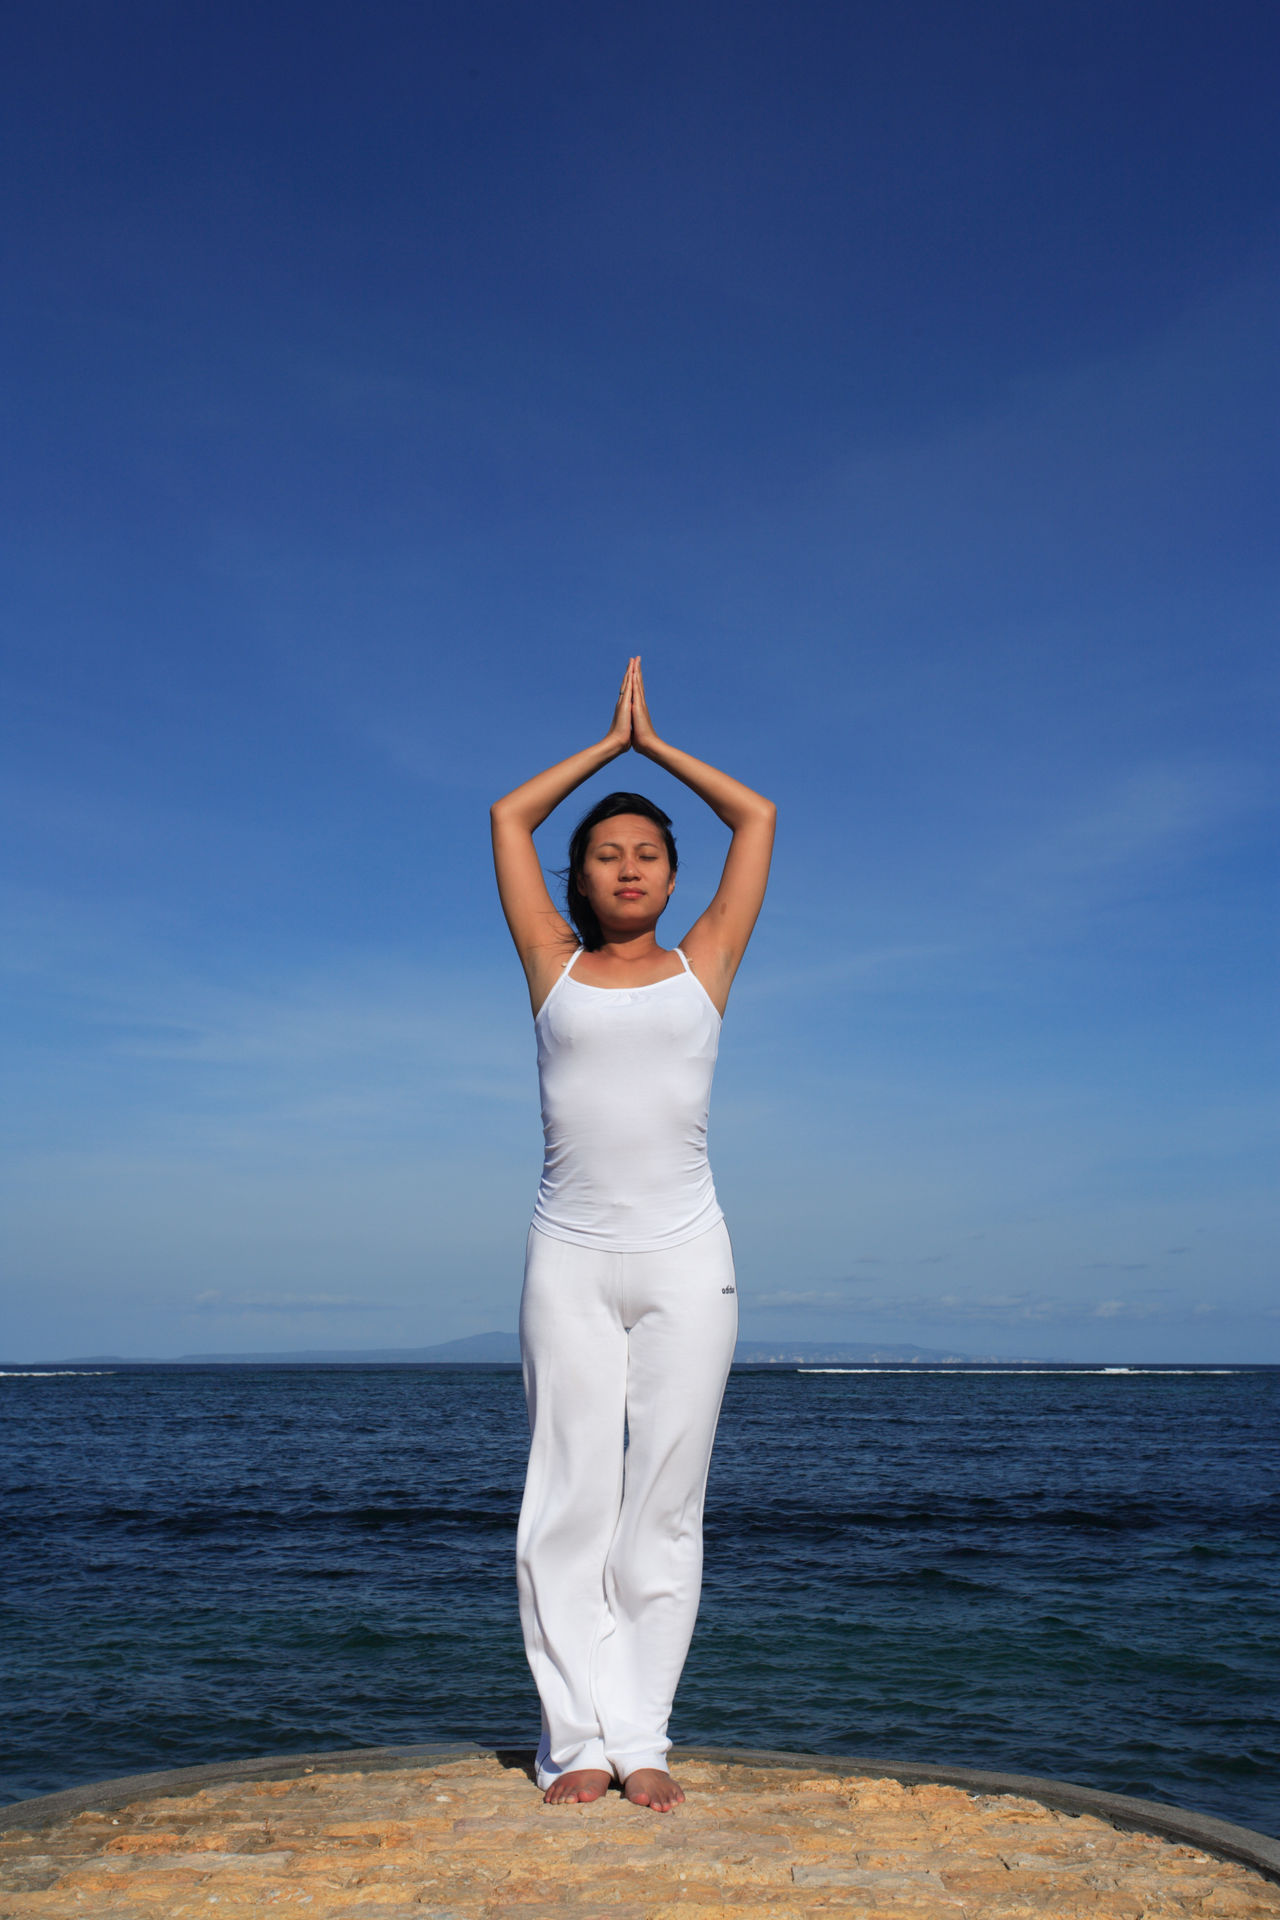 Arms Raised Beach Blue Clear Sky Exercising Full Length Hands Clasped Healthy Lifestyle Human Arm Human Body Part Limb Meditating One Person Outdoors People Relaxation Exercise Religion Sea Sky Spirituality Stretching Summer Vacations Yoga Zen-like